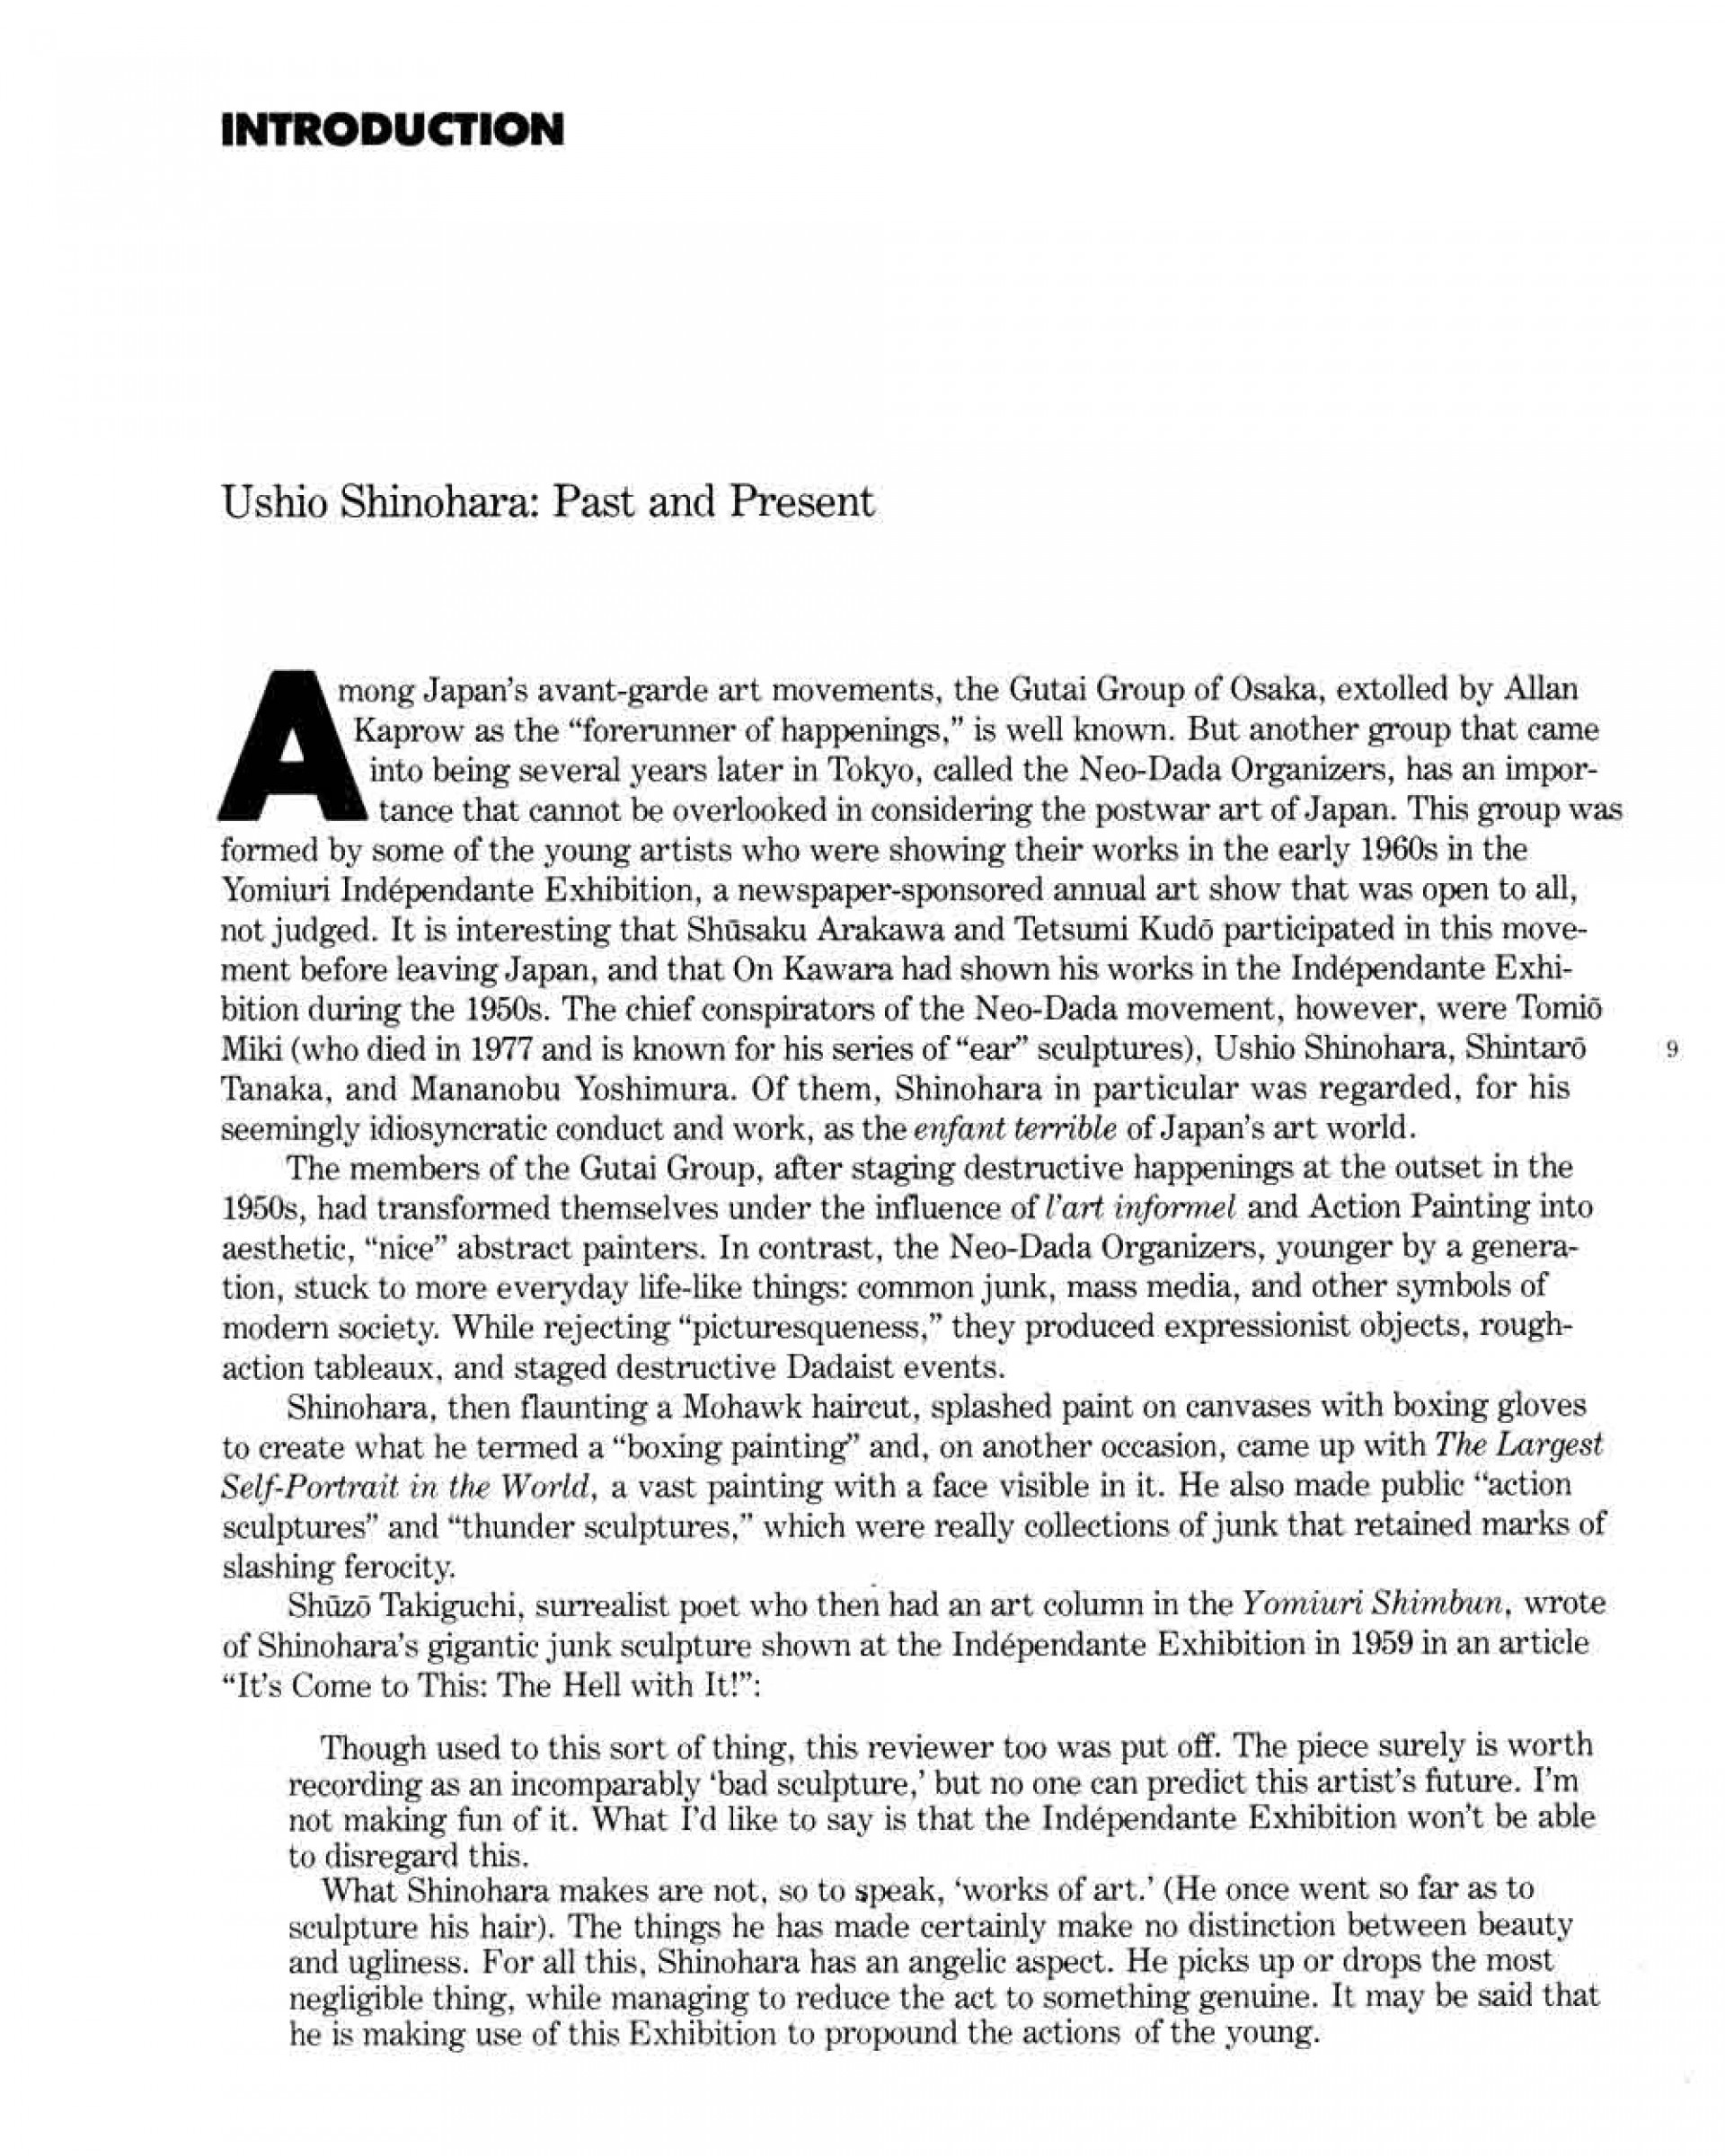 009 Ushio Shinohara Pastd Present Essay Pg 1 Example How To Cite Work In Stupendous An Nber Working Paper Mla A Web Source 1920